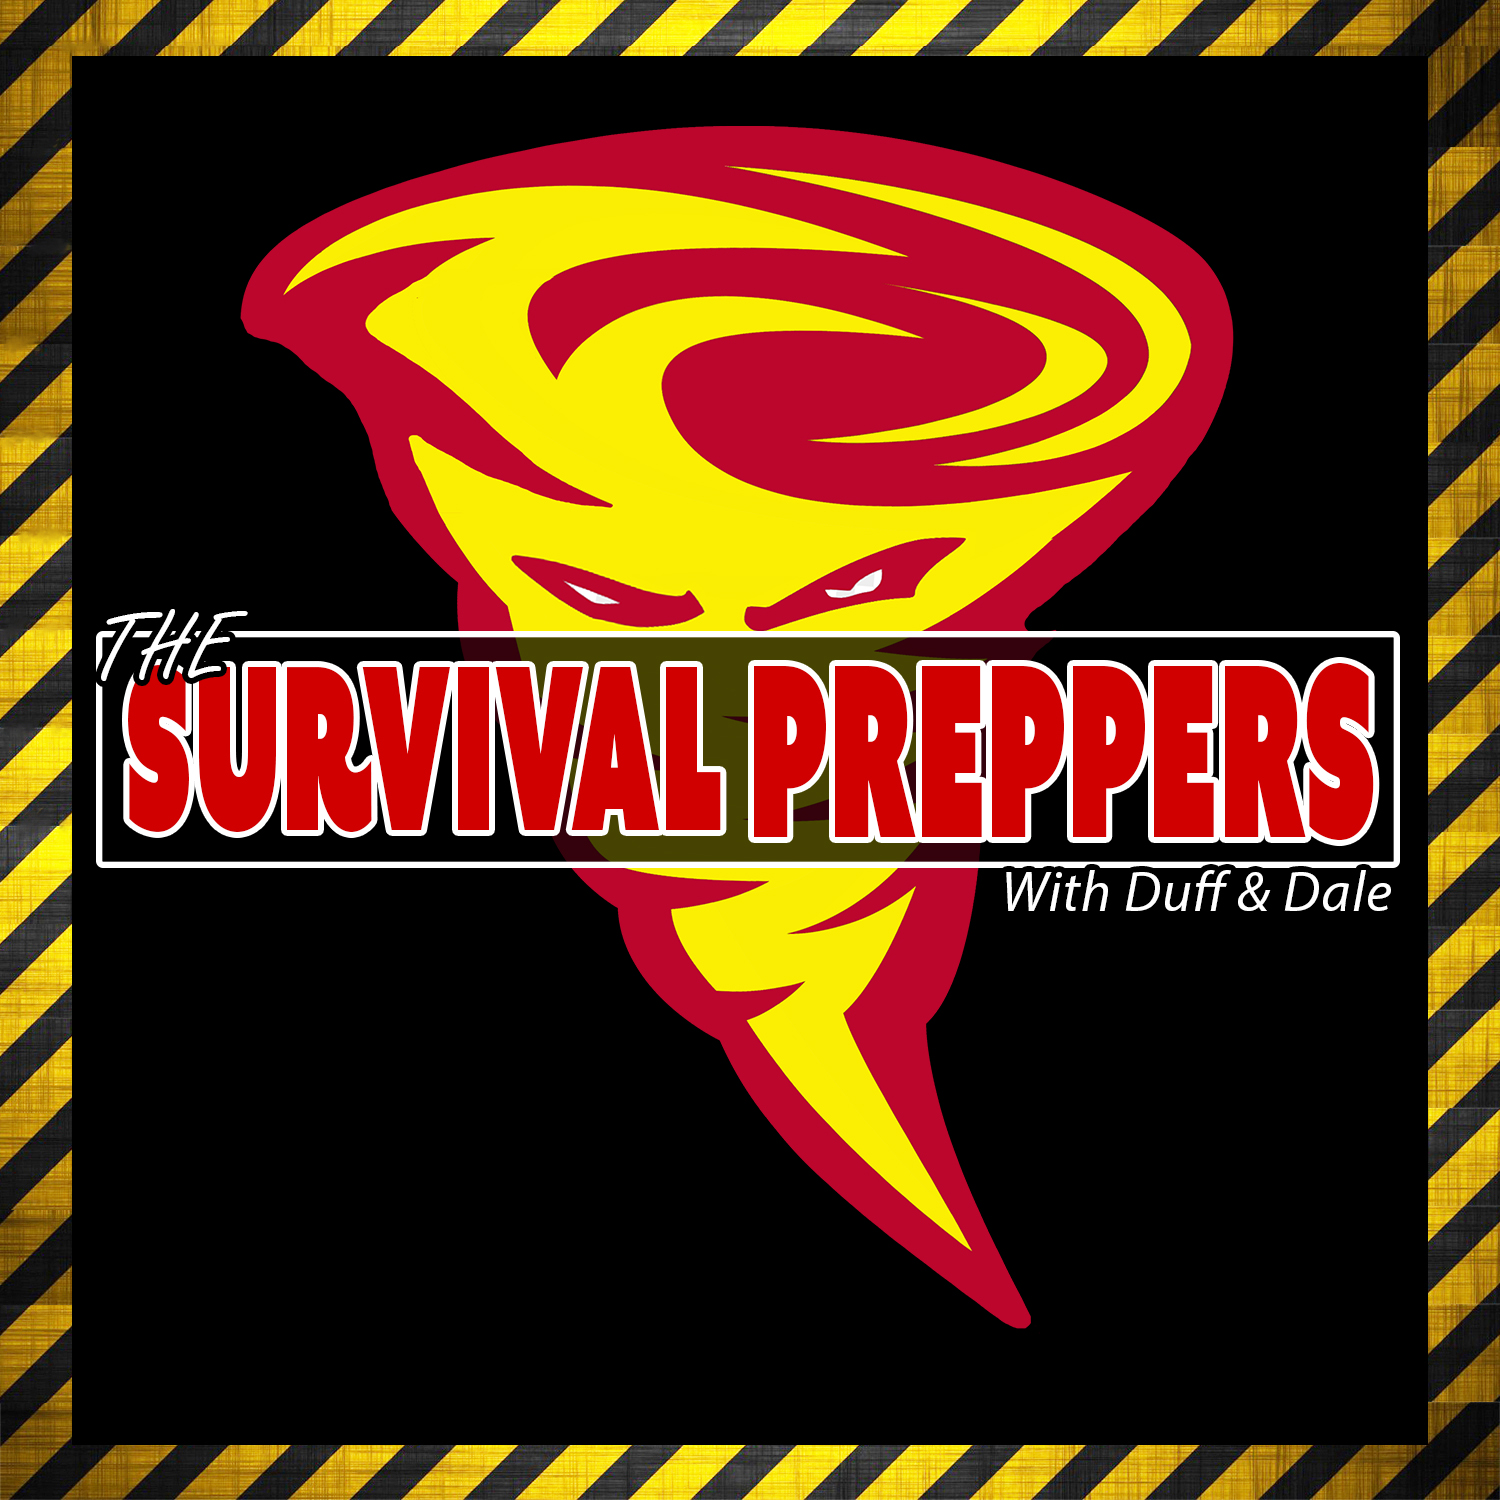 The Survival Preppers with Duff & Dale